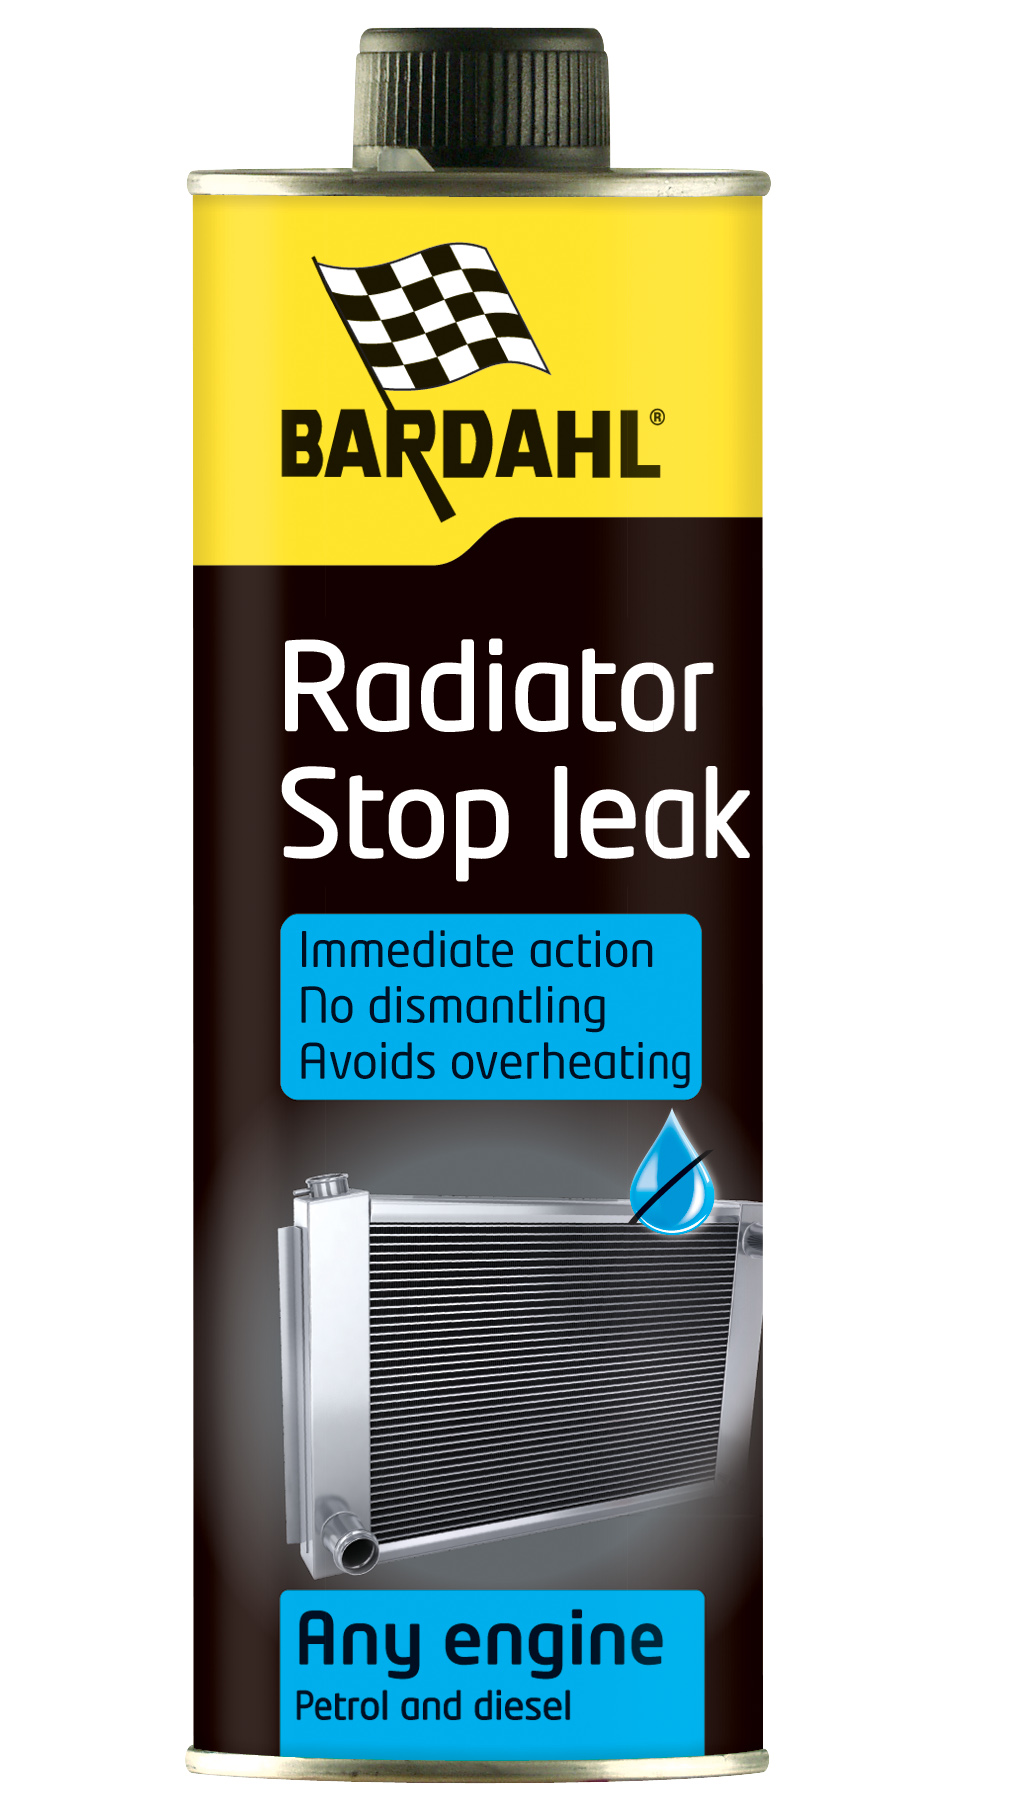 RADIATORSTOPLEAK